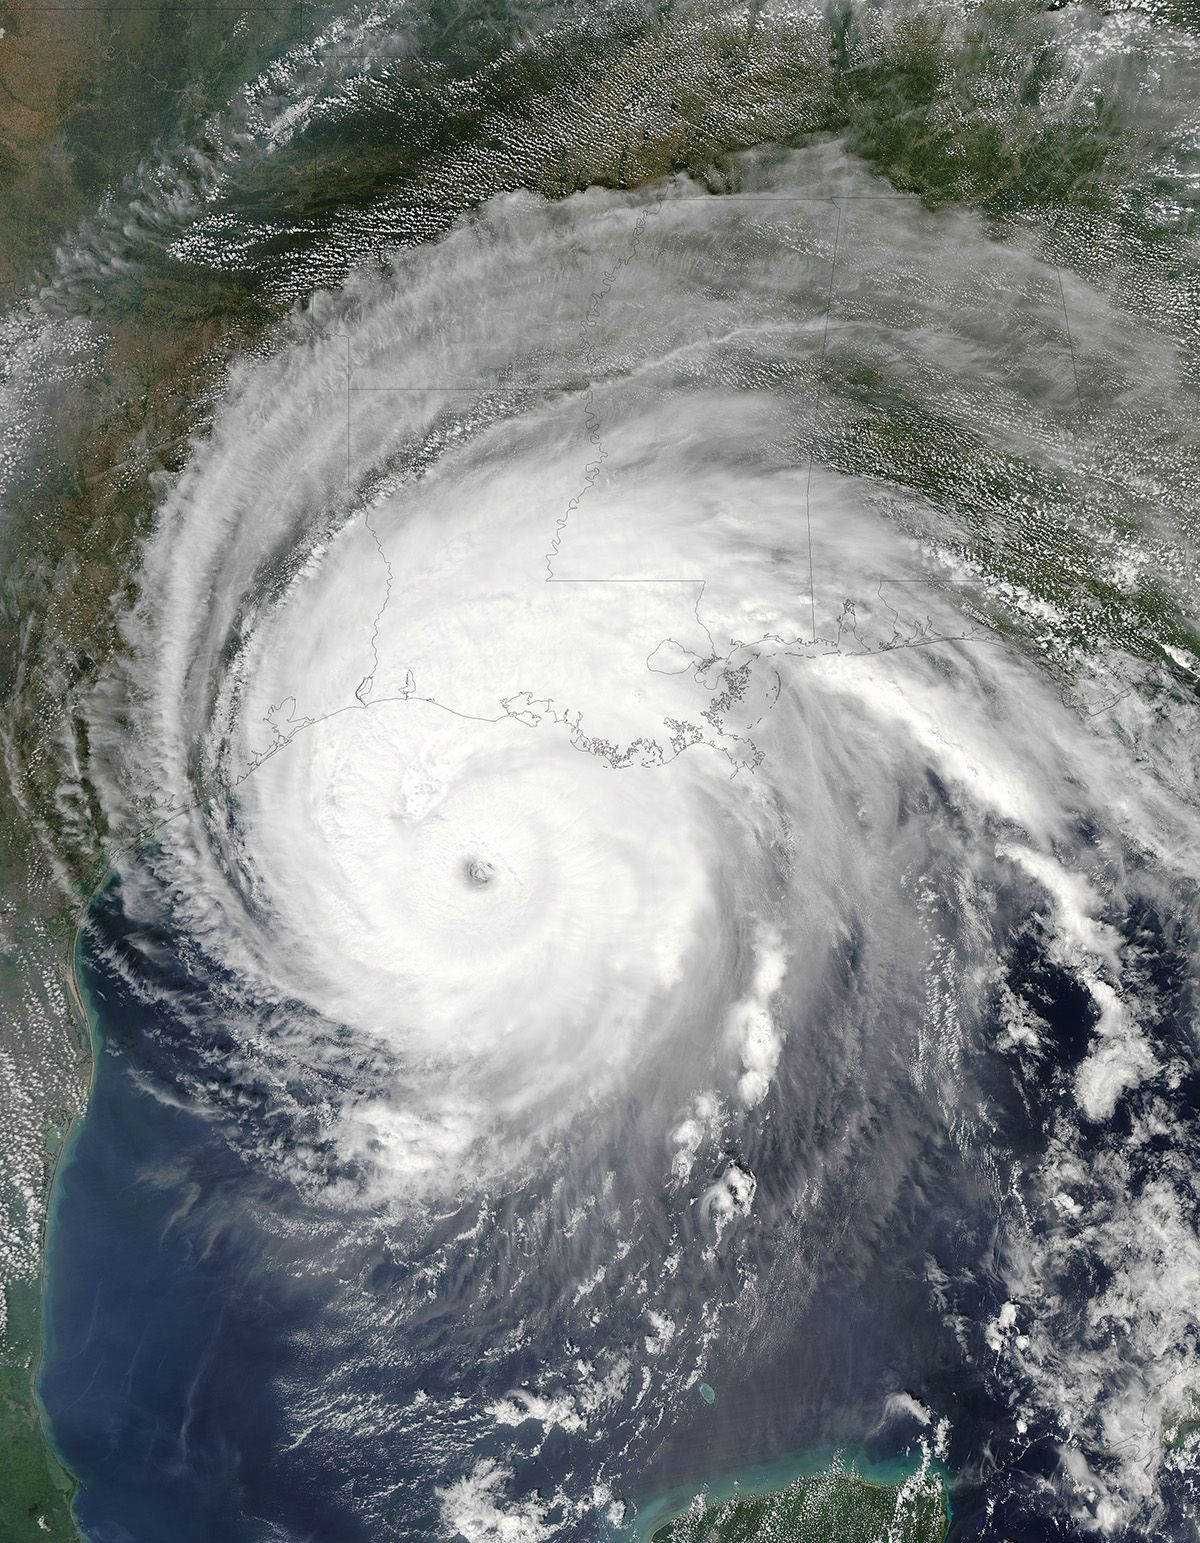 Hurricane Rita Damage Billion Usd 12 0 Season 2005 Category 5 Deaths 62 Areas Affected Cuba United States And Gulf Spirals In Nature Nature Hurricane